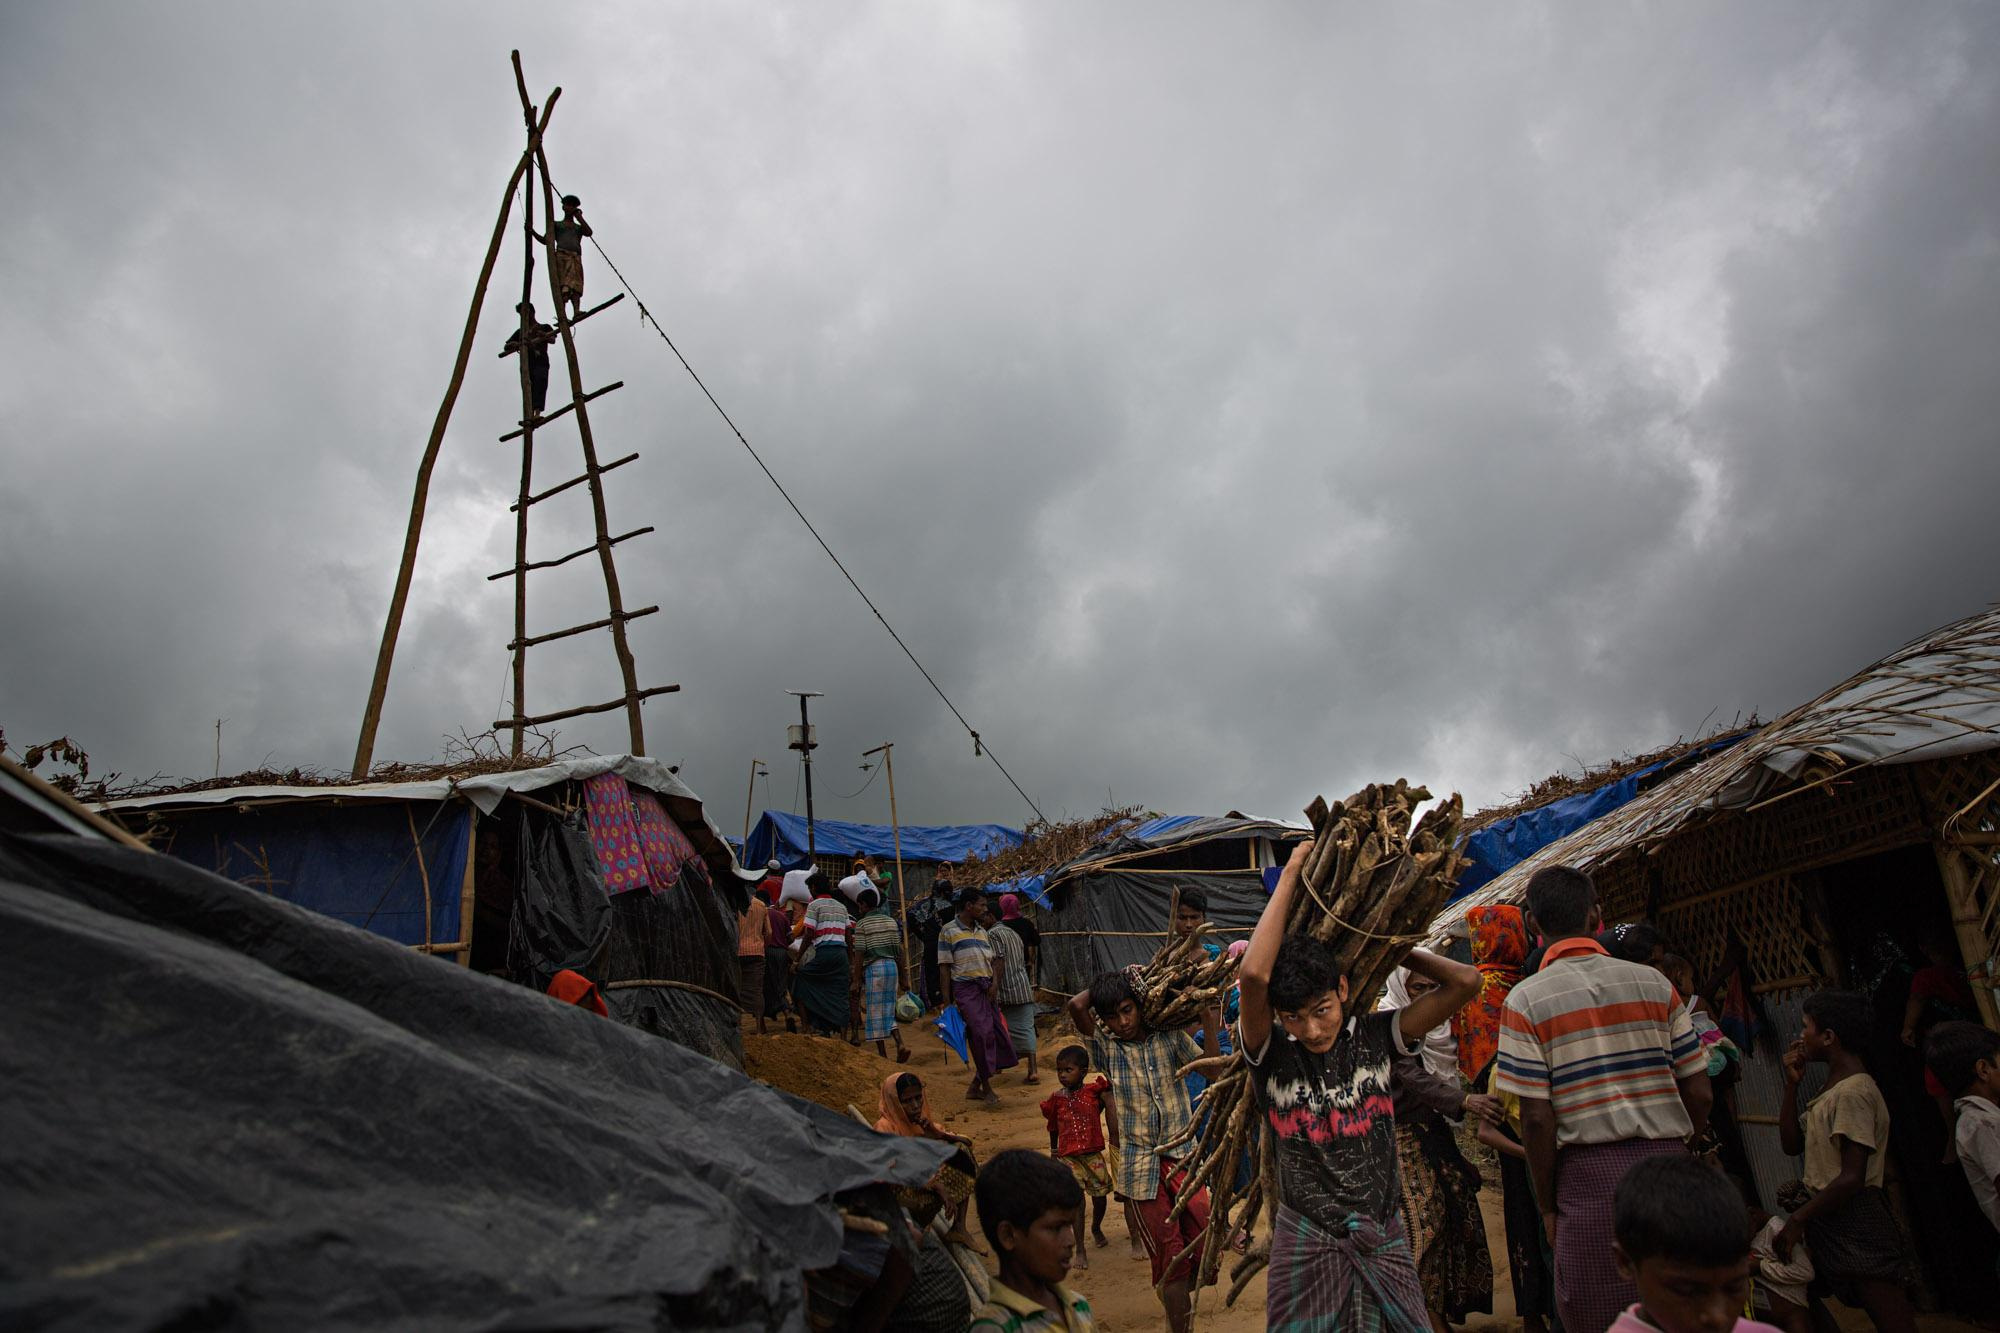 Rohingya refugees move through one of the camps outside of Cox's Bazar, Bangladesh. In the distance the frame for a drill can be seen that will be used to make a water well.